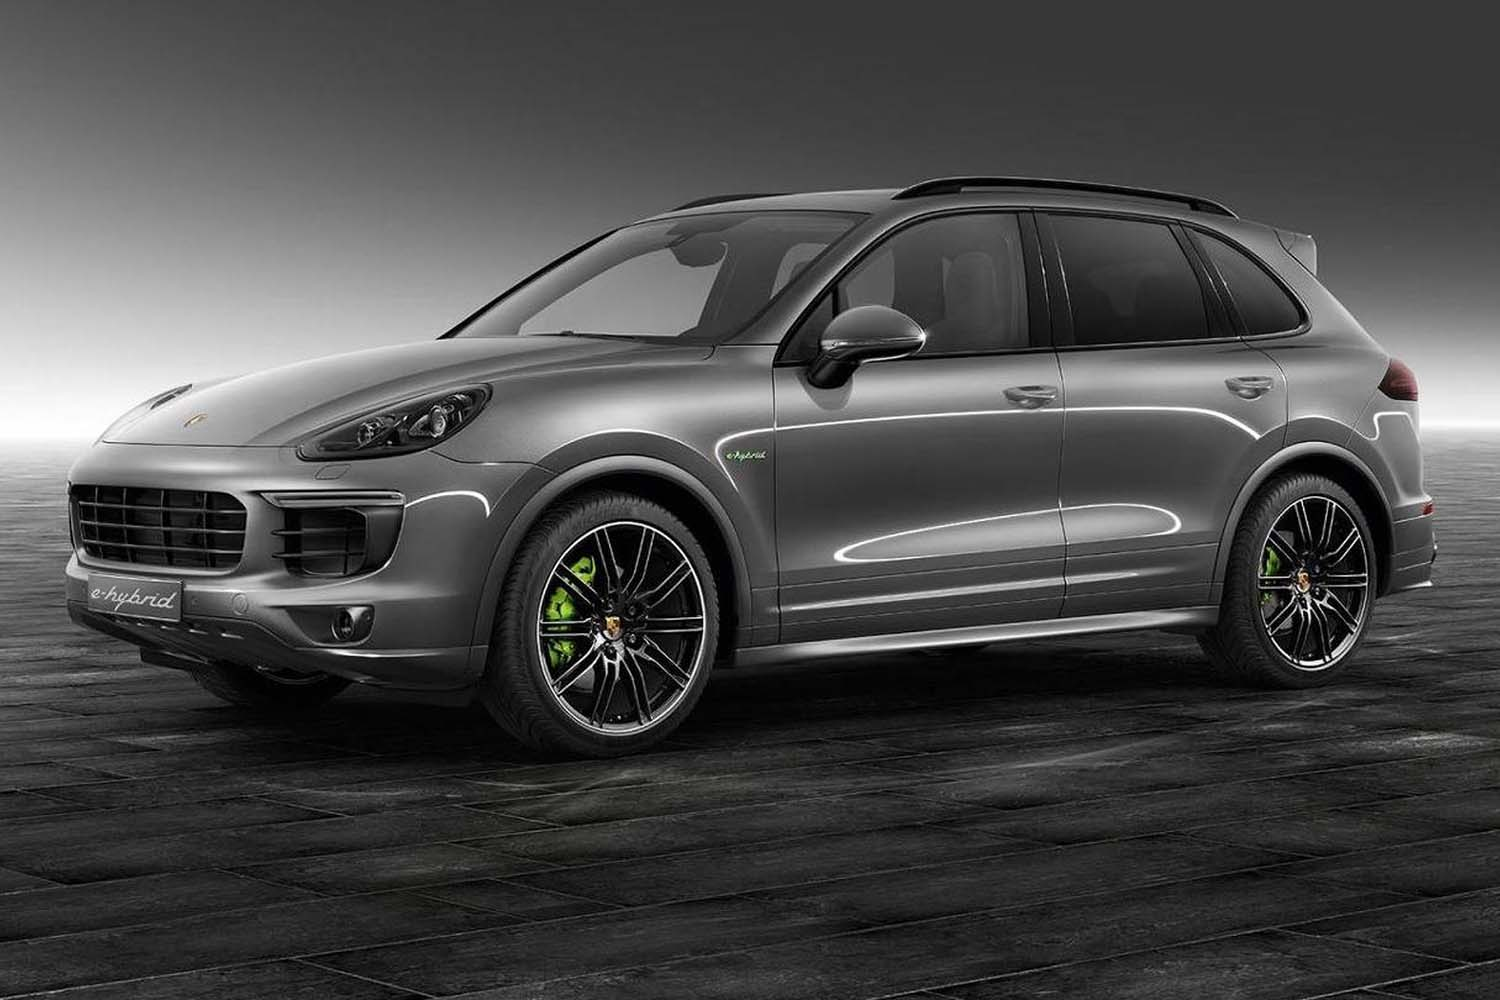 Top 10 Sustainable Luxury Cars for 2020: Porsche Cayenne E-Hybrid